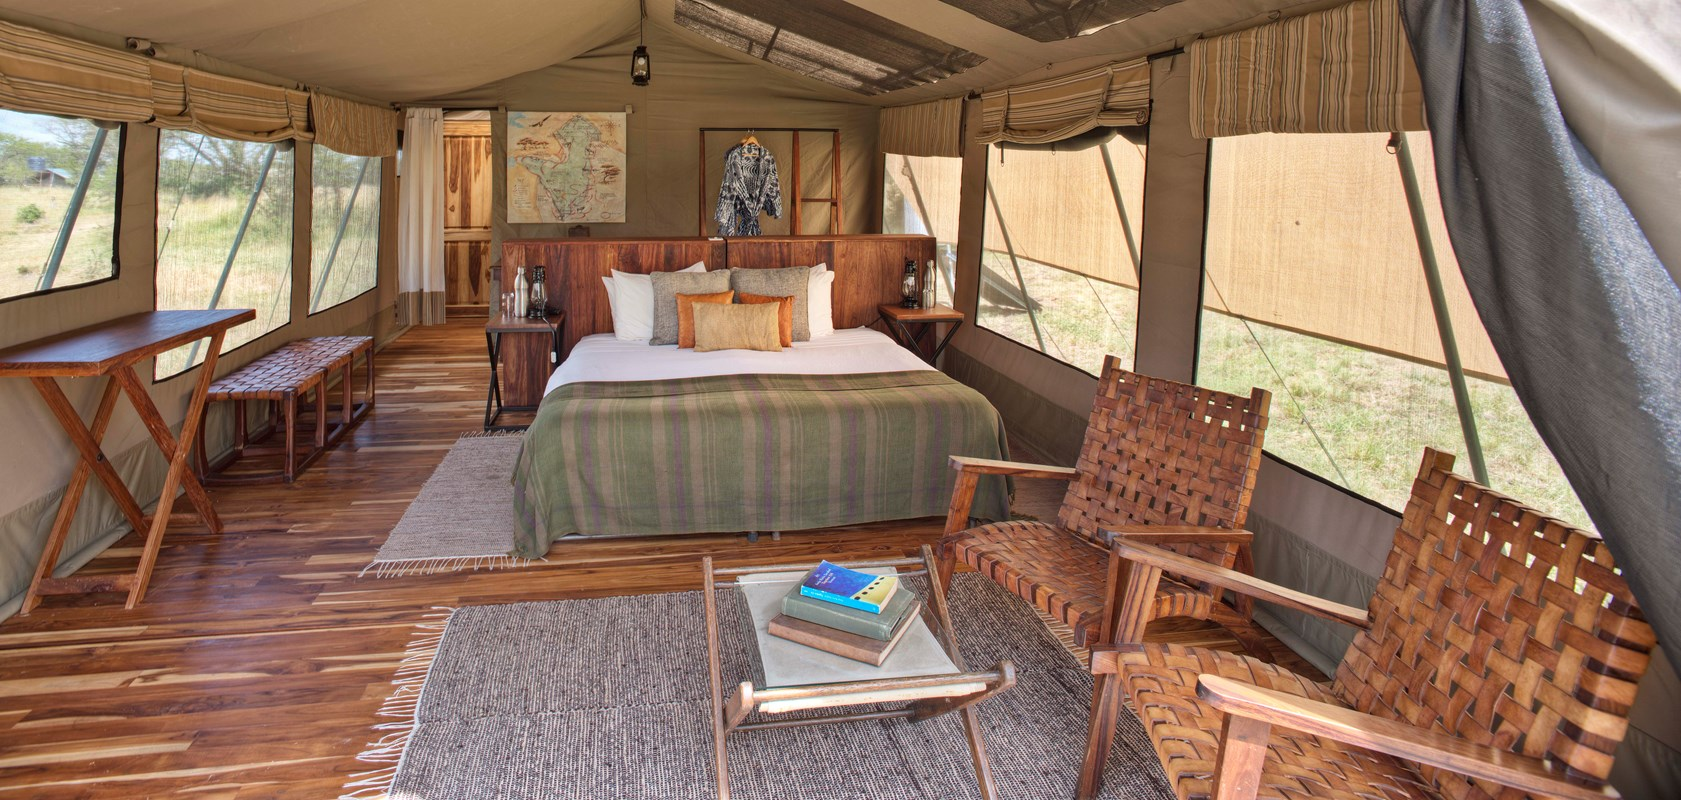 2. Olakira En Suite Double Room With Wooden Deck Platform And Lounge Area